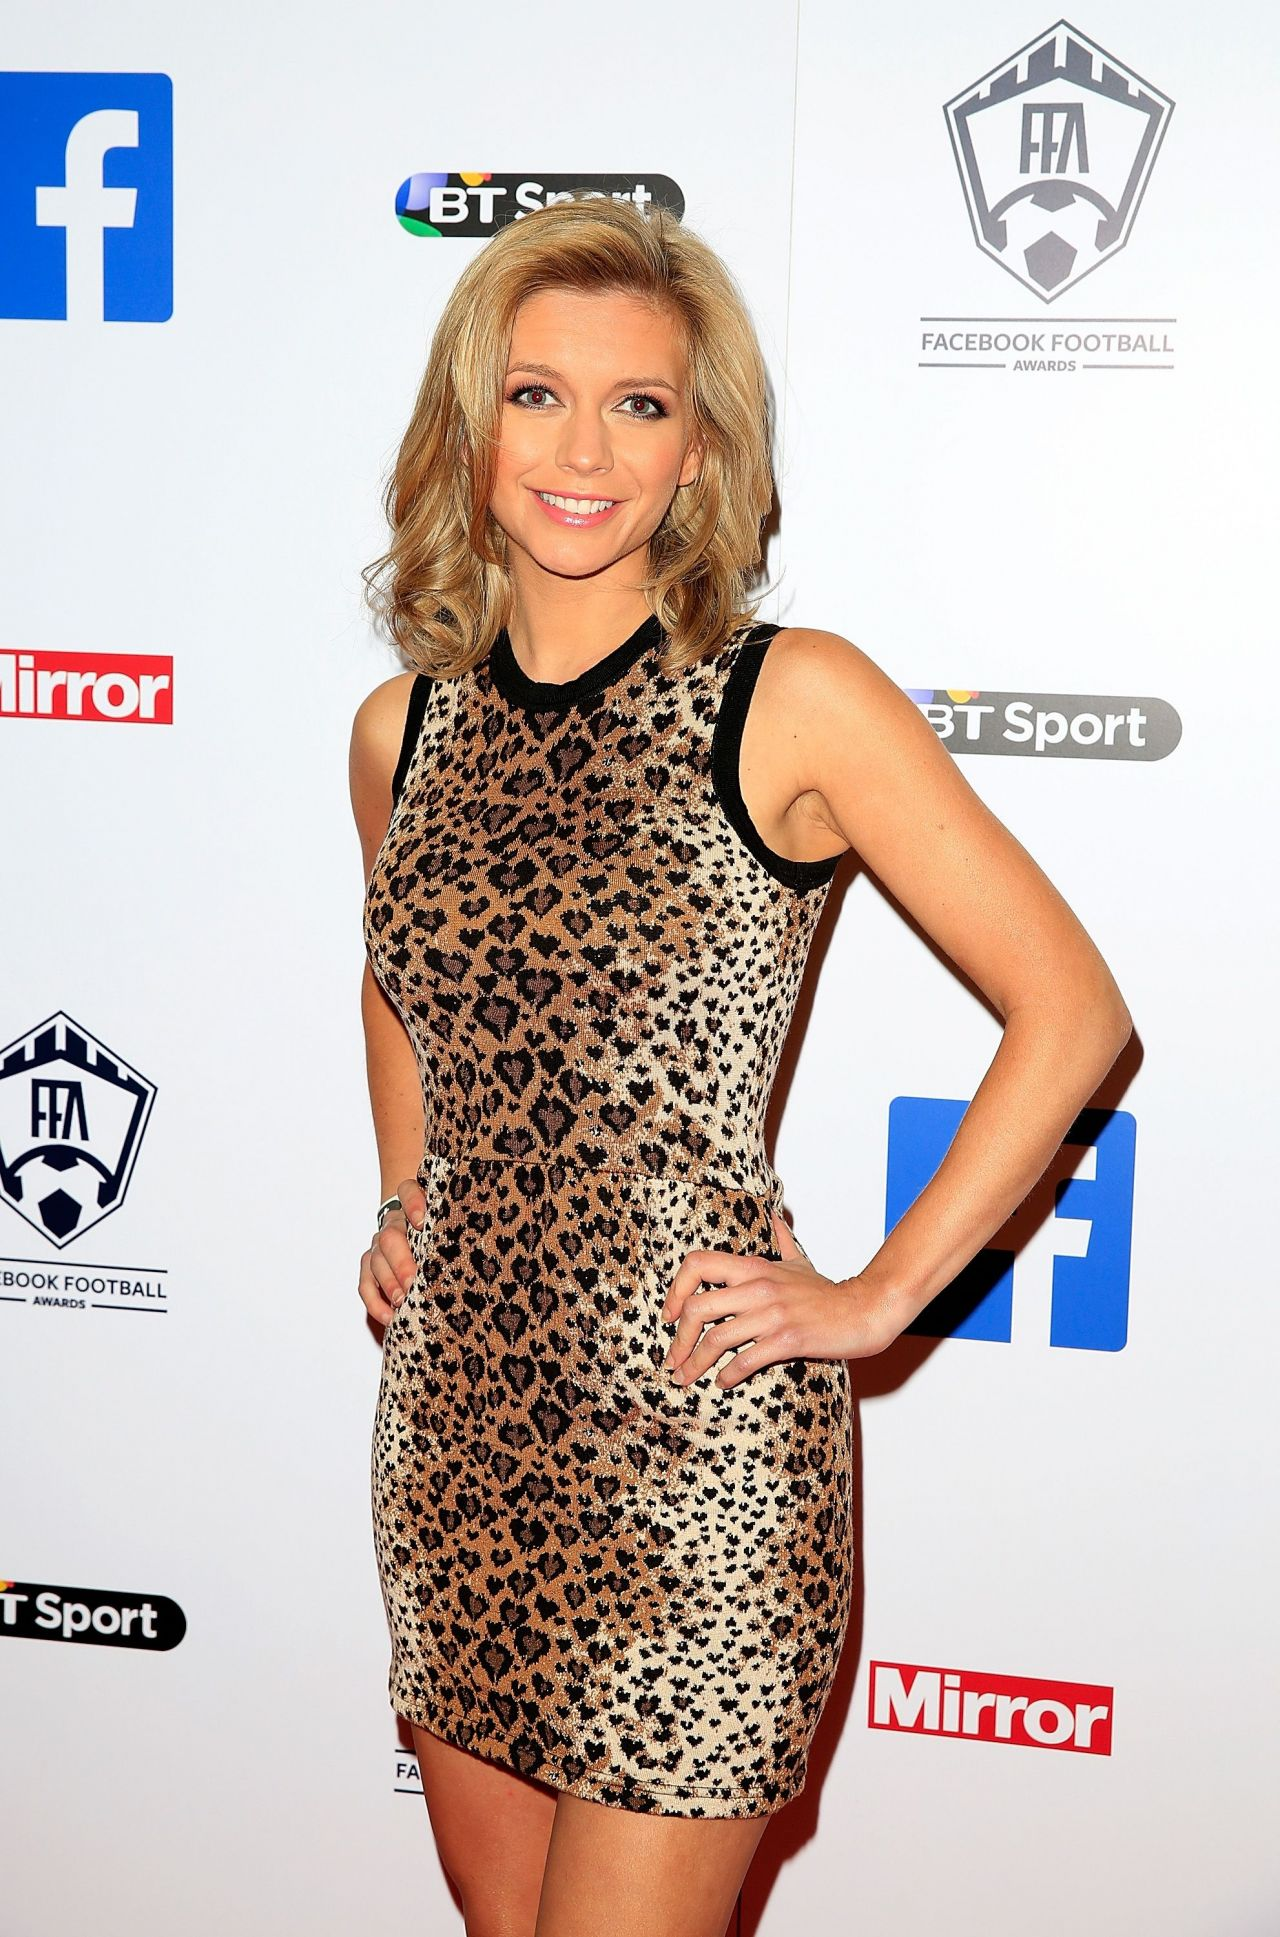 rachel-riley-hot-wallpaper